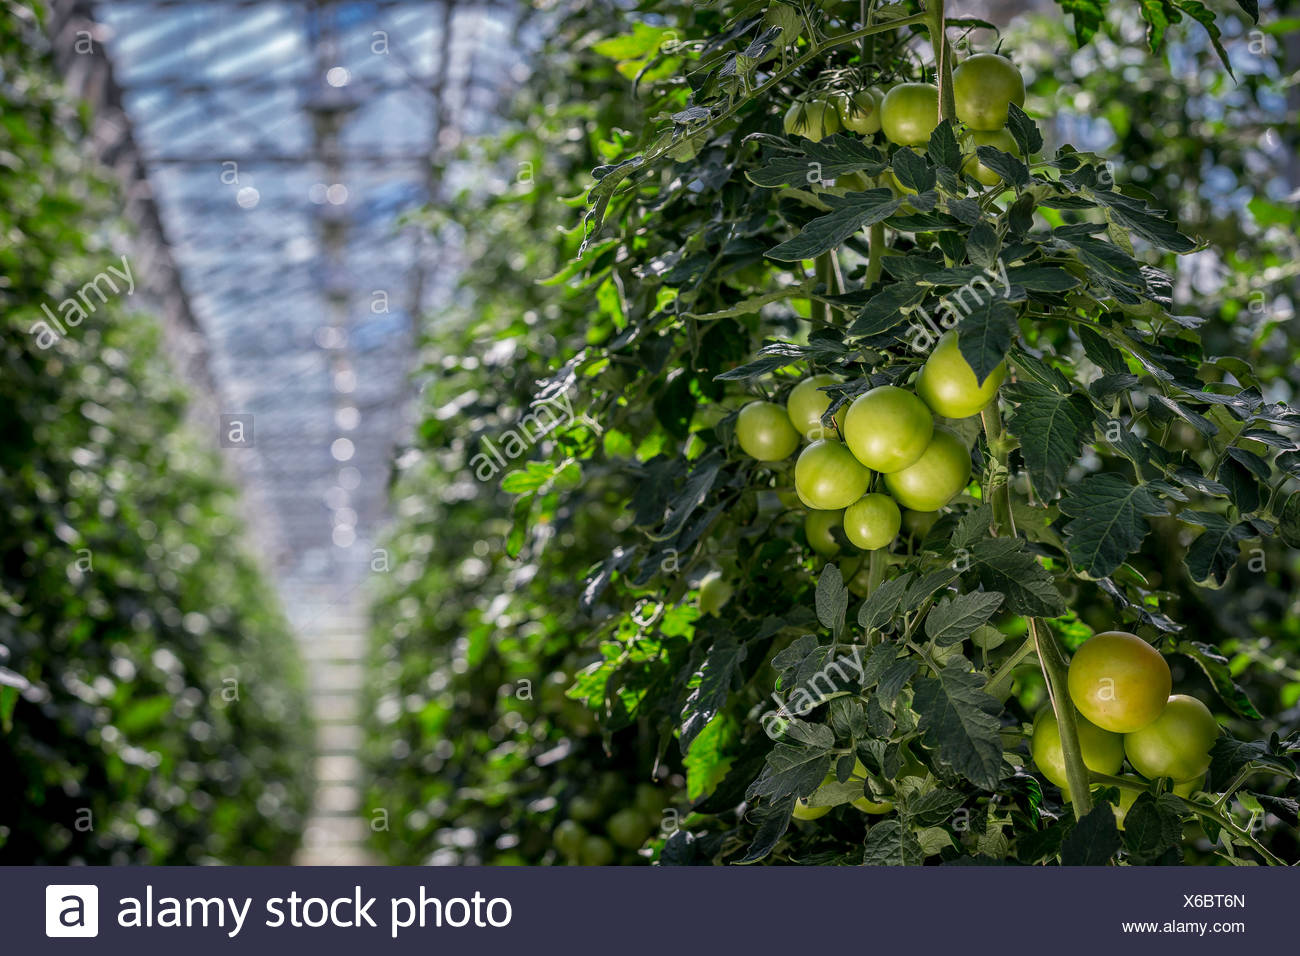 Tomatoes in greenhouse, Iceland Greenhouses are heated with geothermal energy keeping the cost of energy affordable and clean. - Stock Image